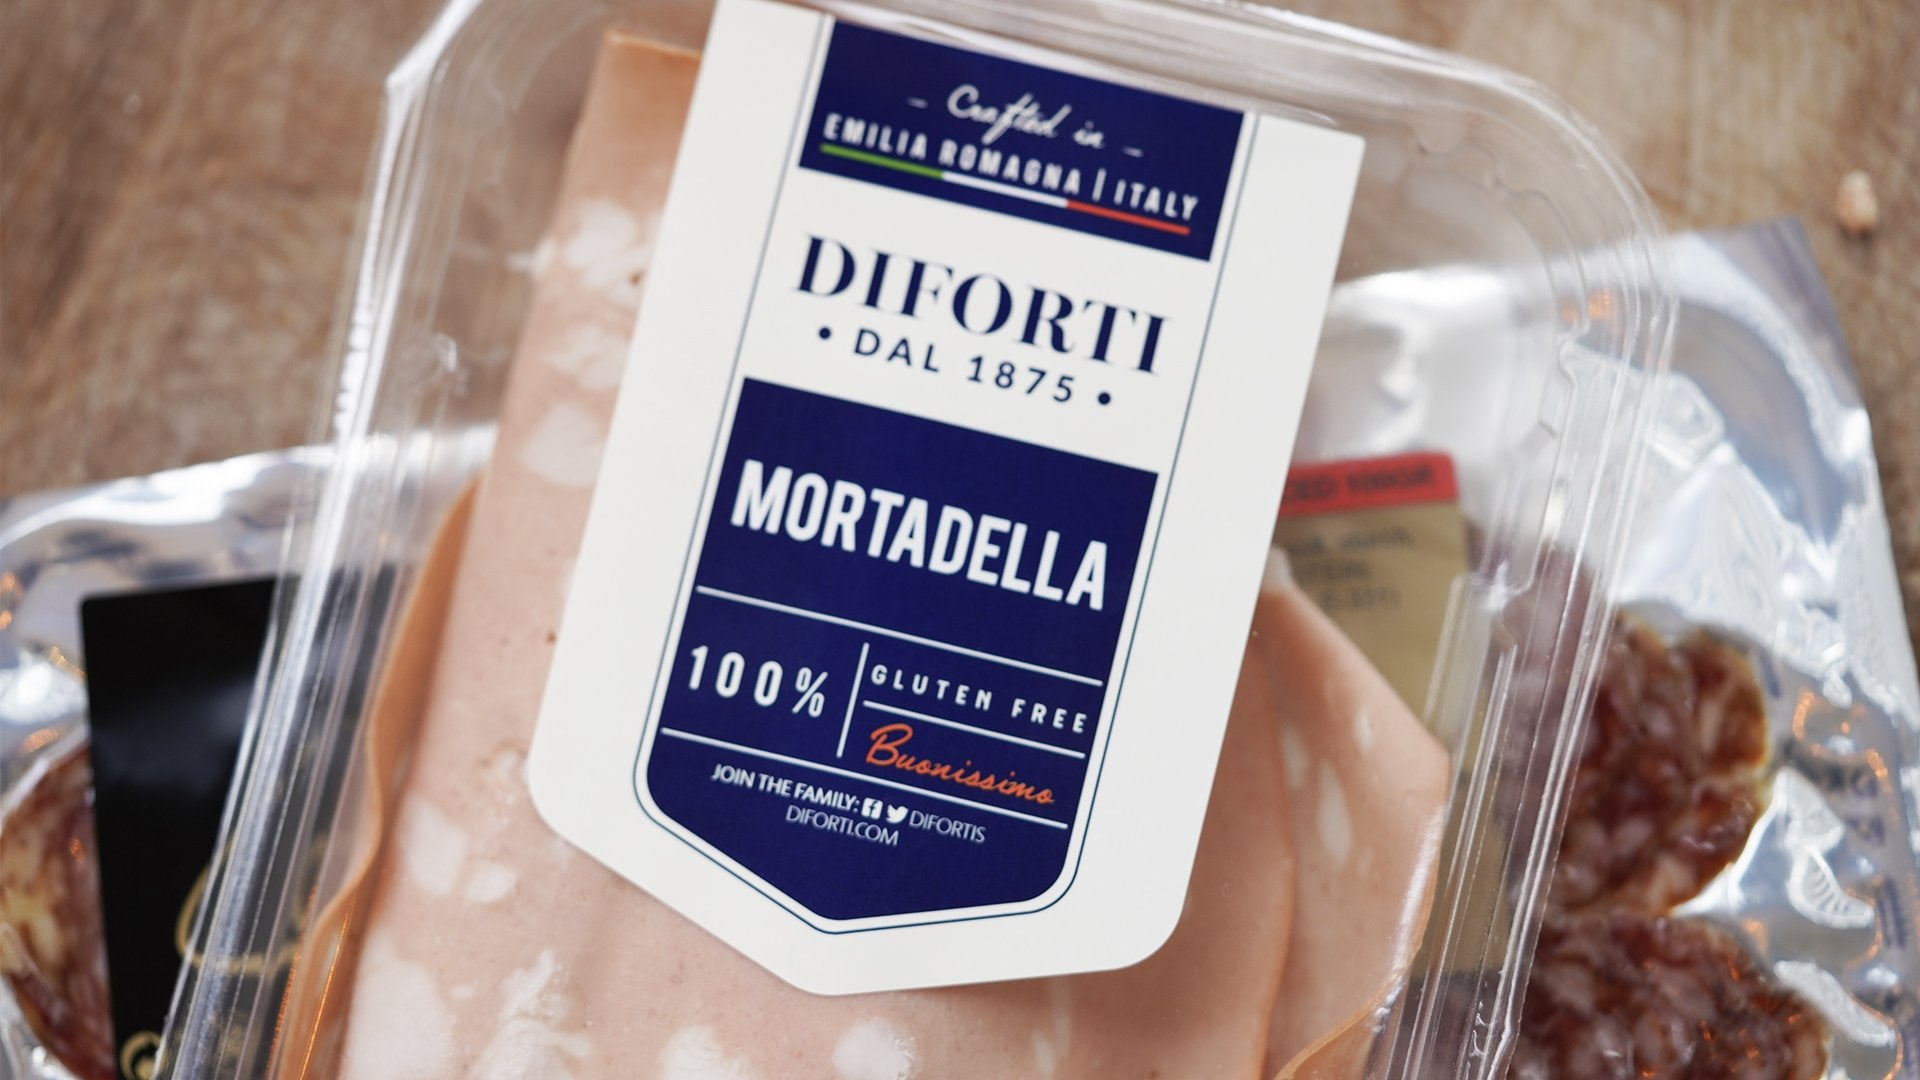 Diforti Mortadella Cured Pork for sale - Parsons Nose